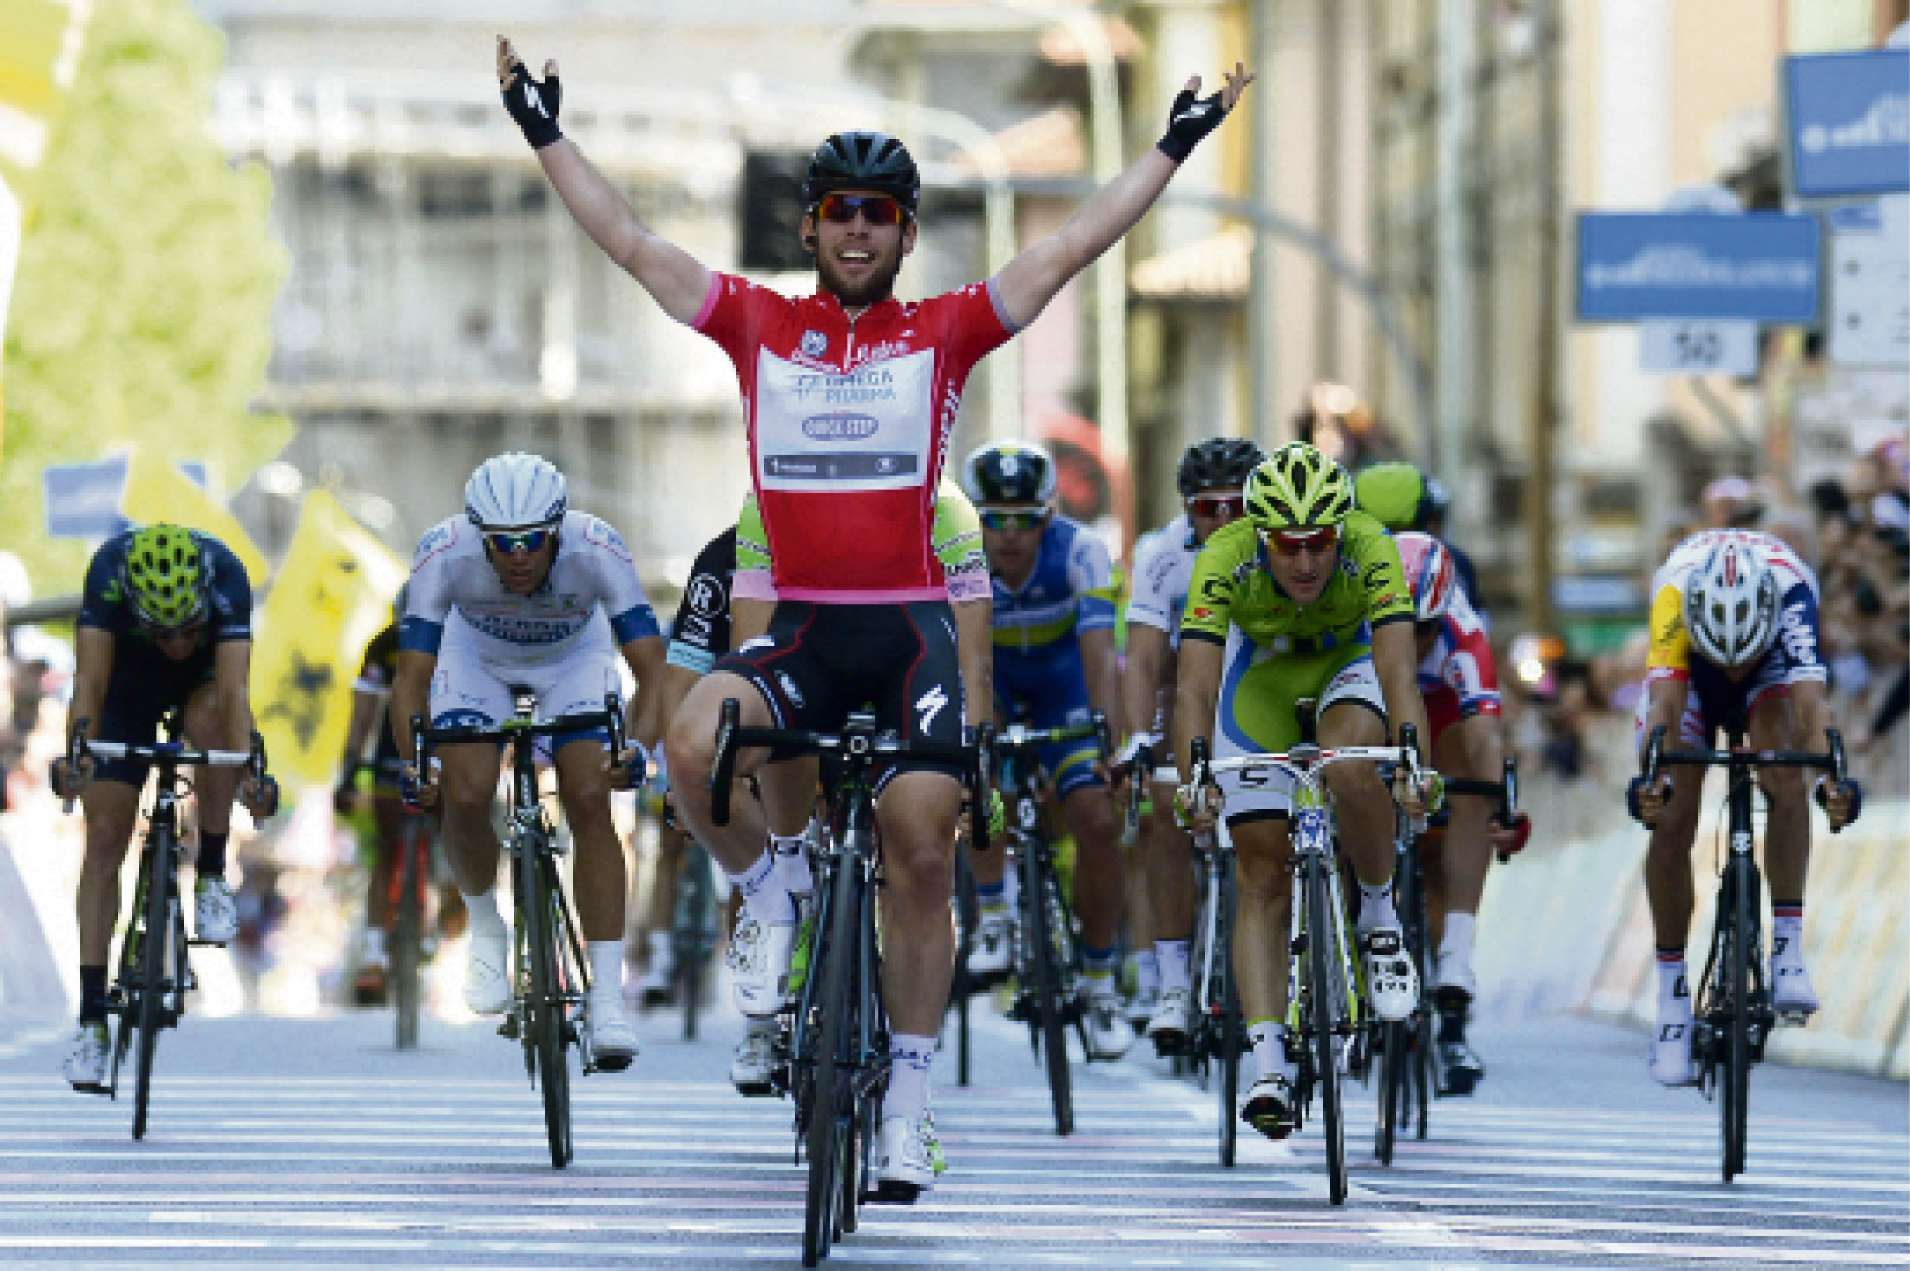 Tour star: Mark Cavendish celebrates as he crosses the finish line to win the final stage of the Giro d'Italia, Tour of Italy cycling race last year.